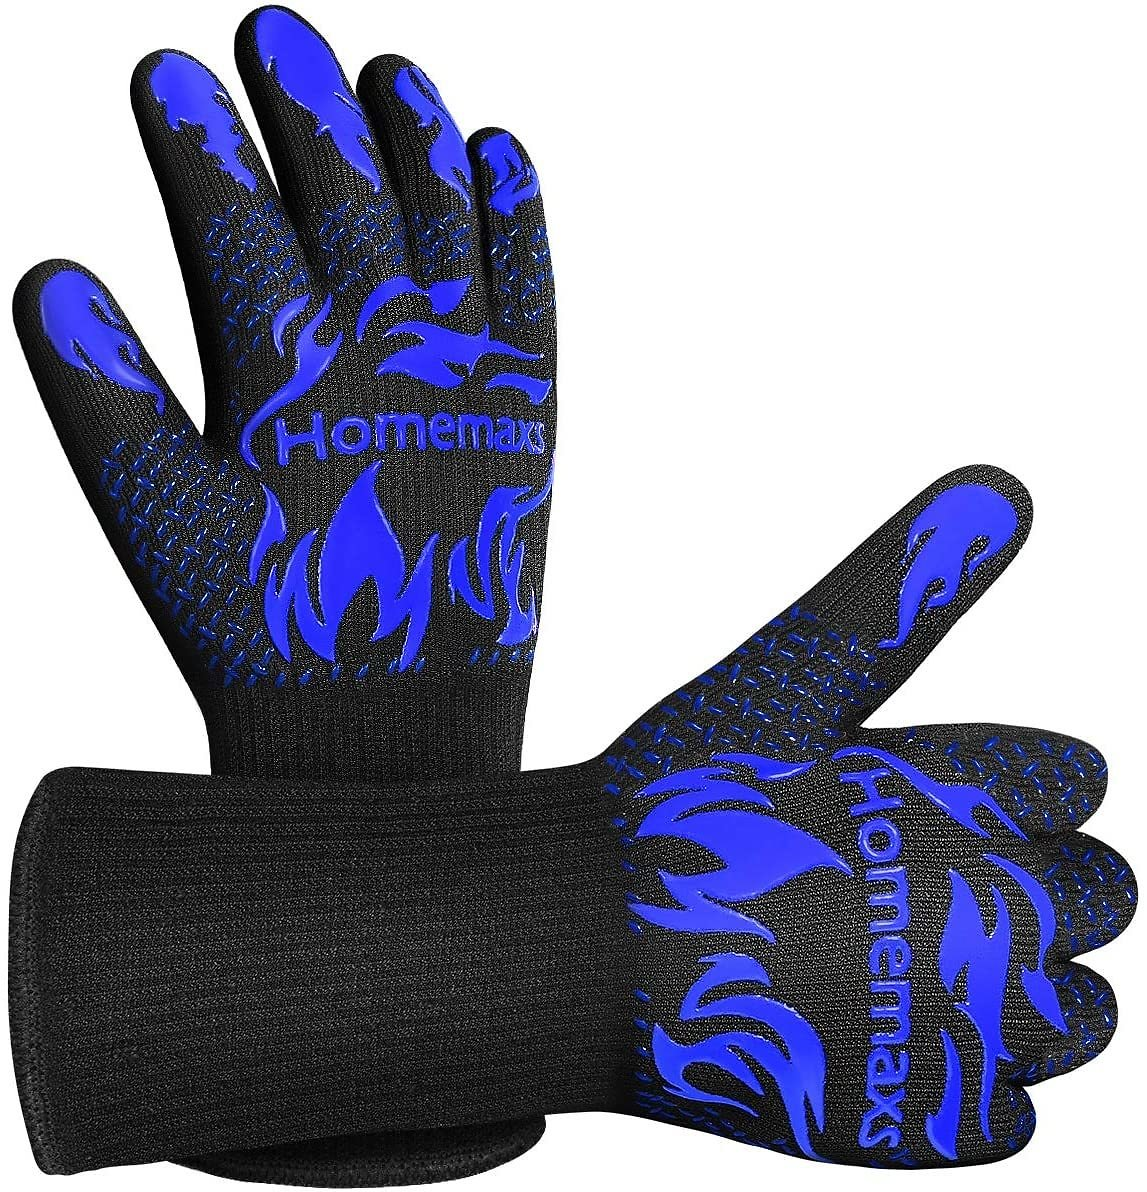 BBQ Gloves 1472℉ Extreme Heat Resistant Grill Gloves, Food Grade Kitchen Oven Mitts